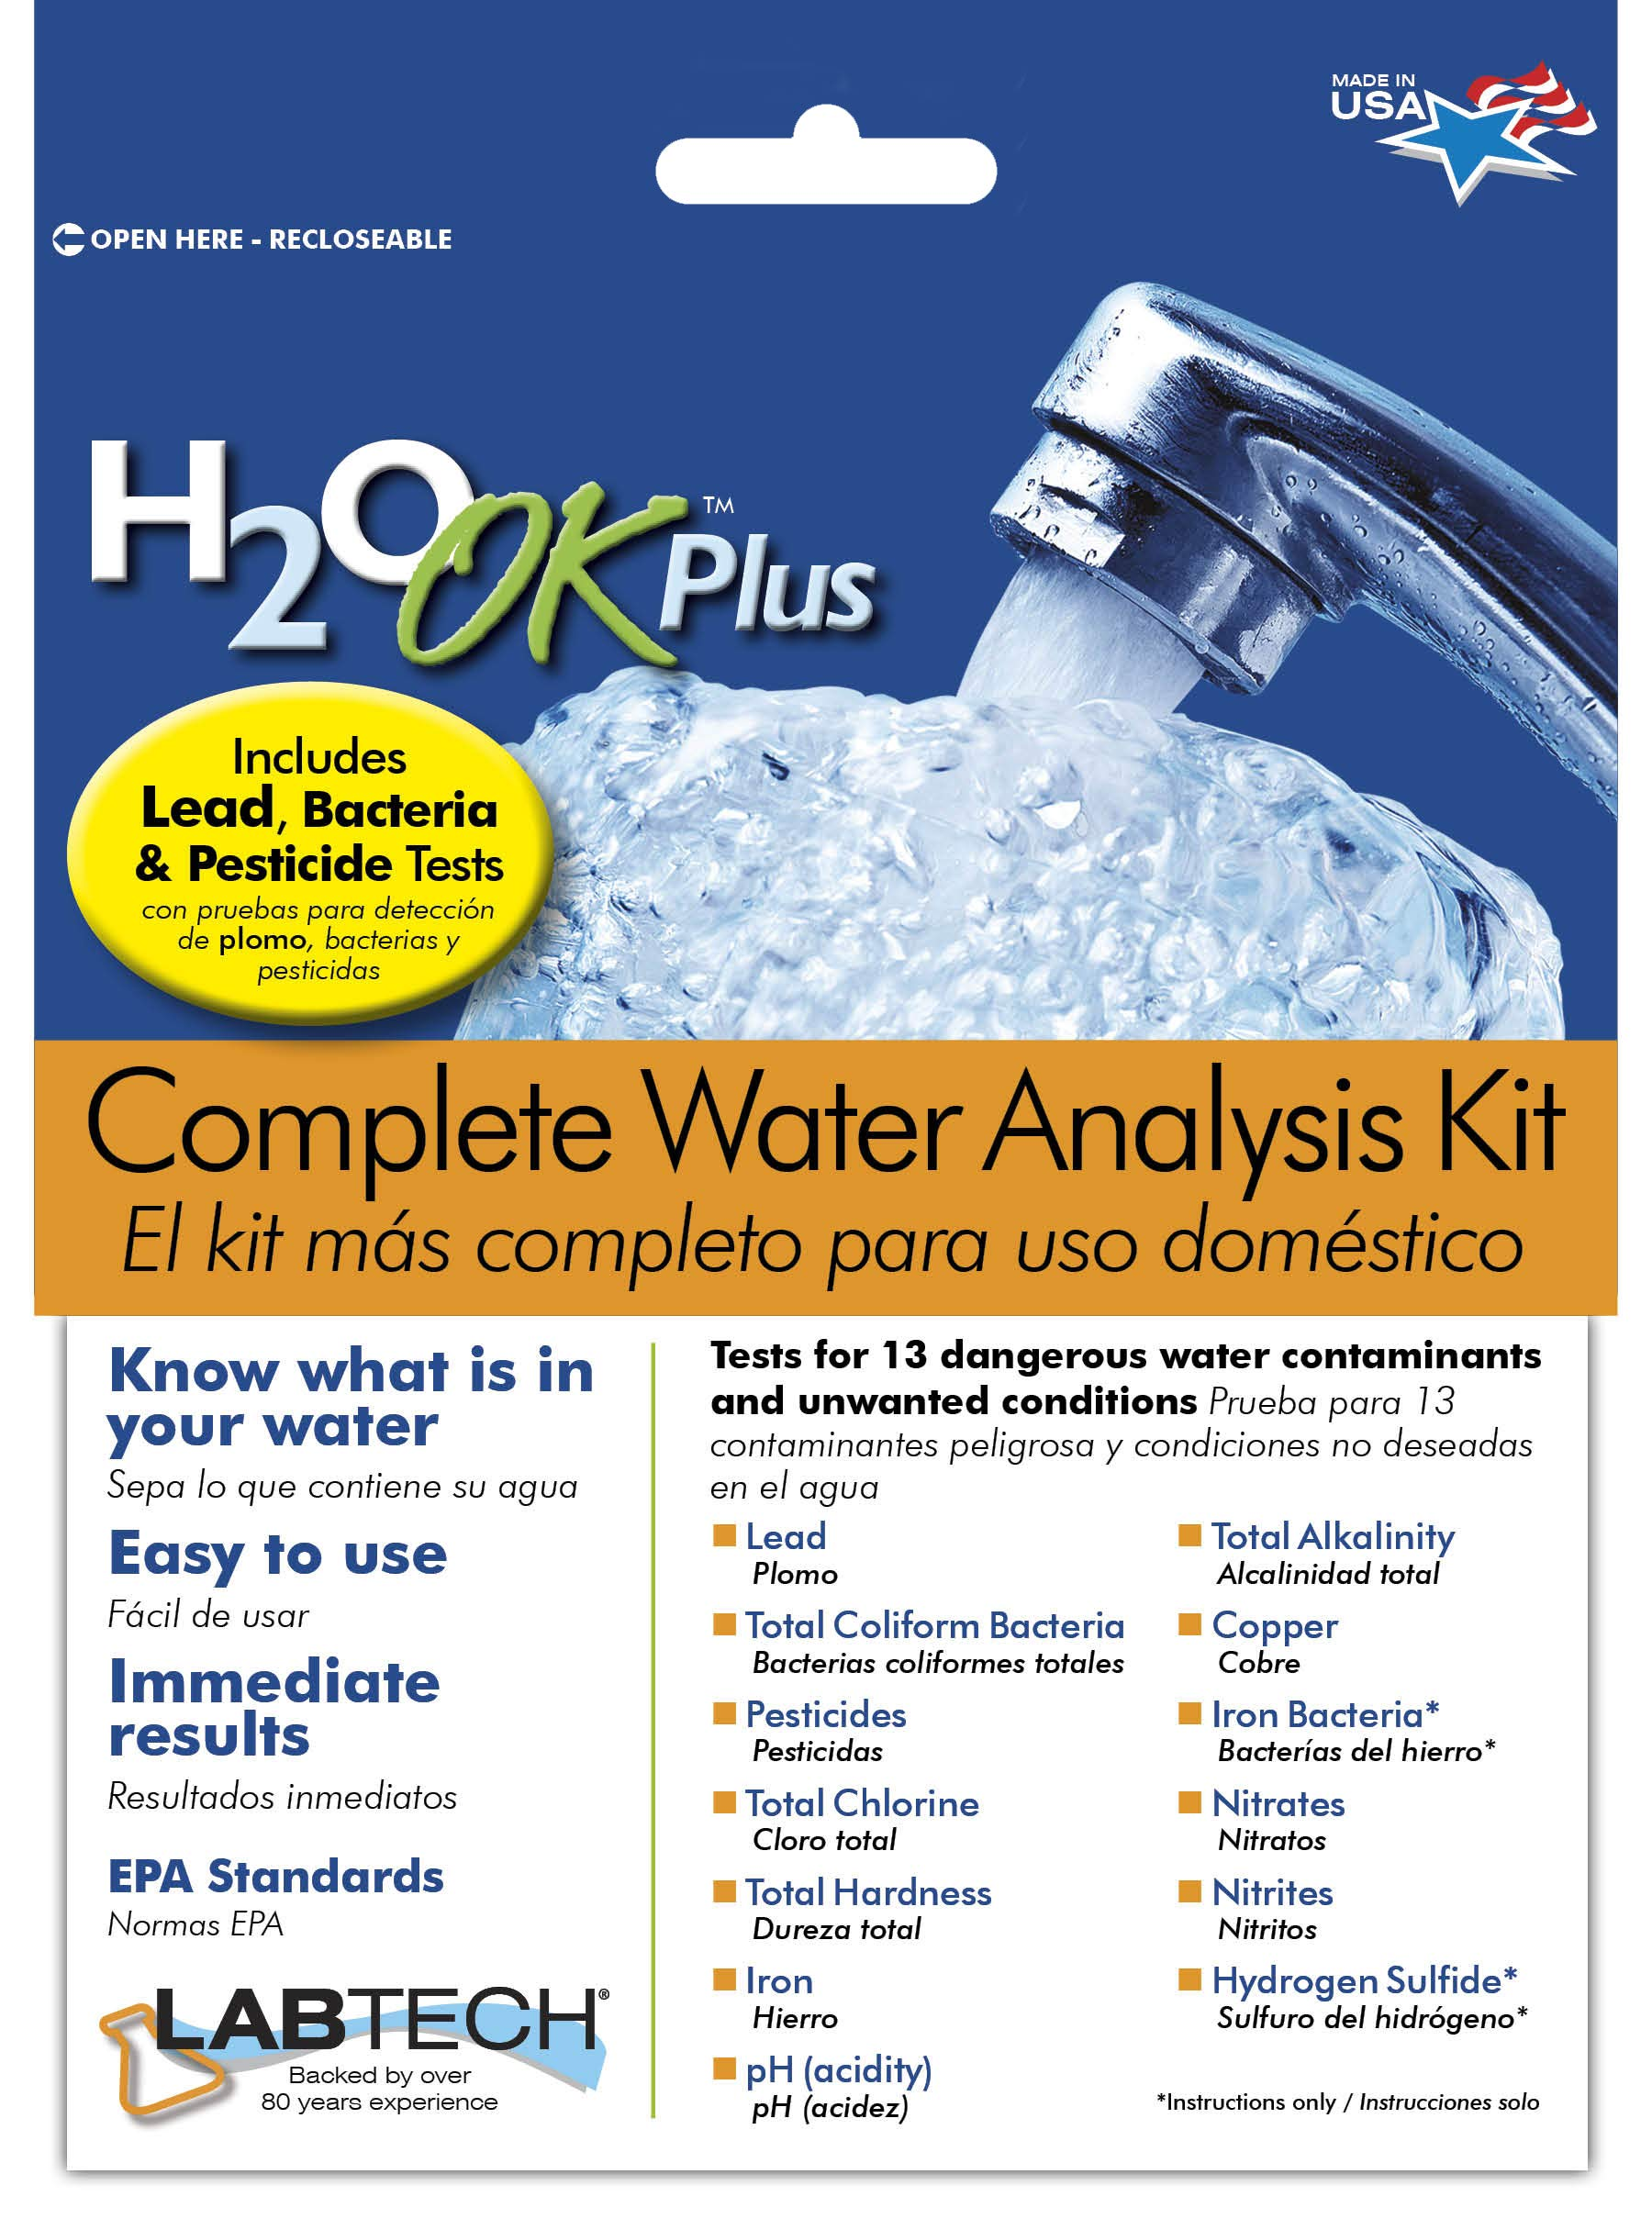 LabTech LT5015 H2O OK Plus Complete Water Analysis Kit by Mosser Lee